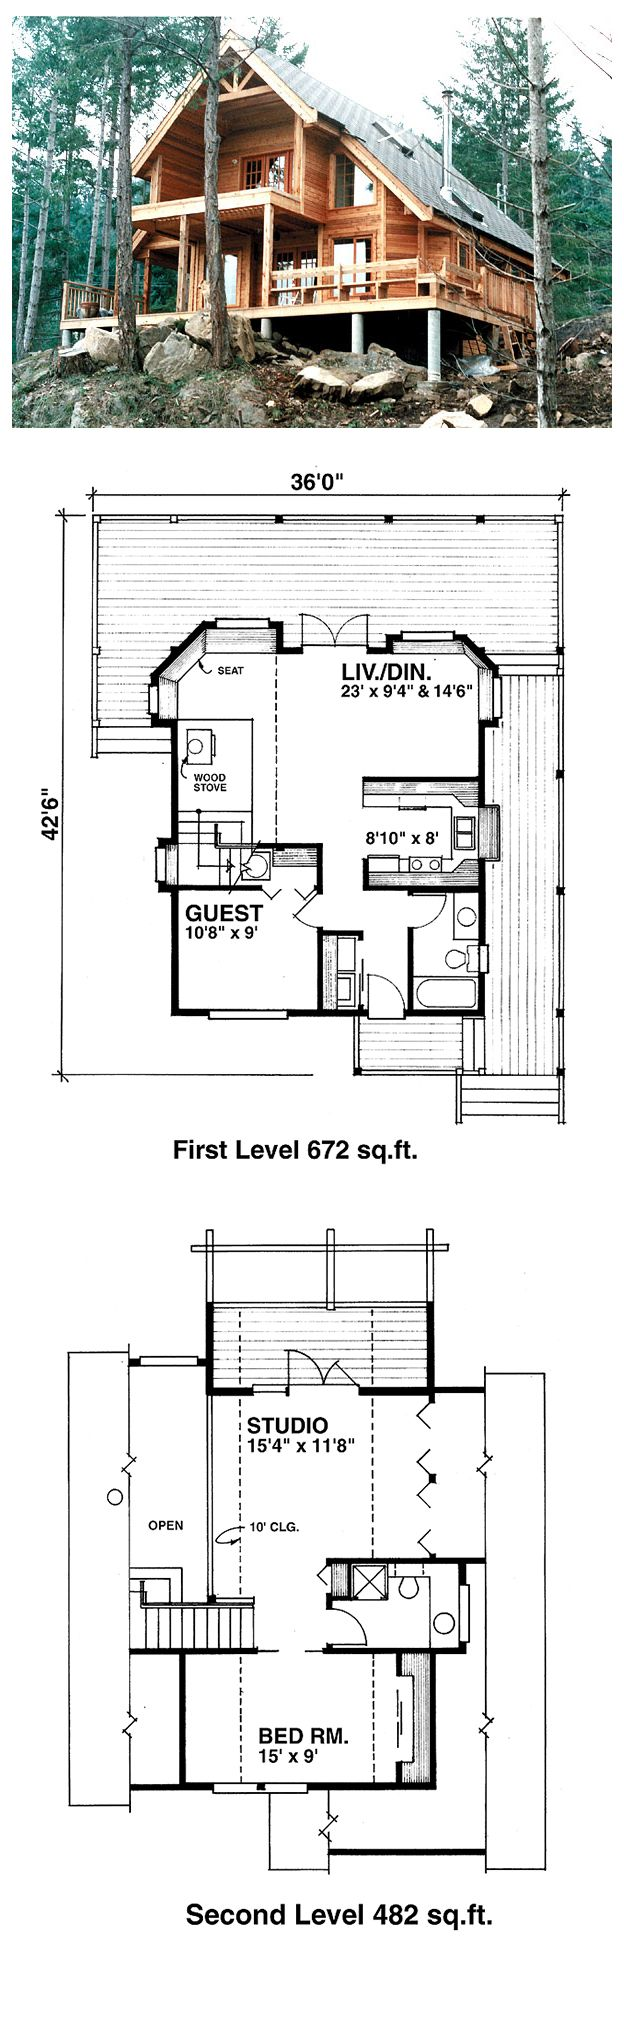 16 best cabin house plans images on pinterest cabin house plans cool house plan id chp 23930 total living area 1154 sq ft